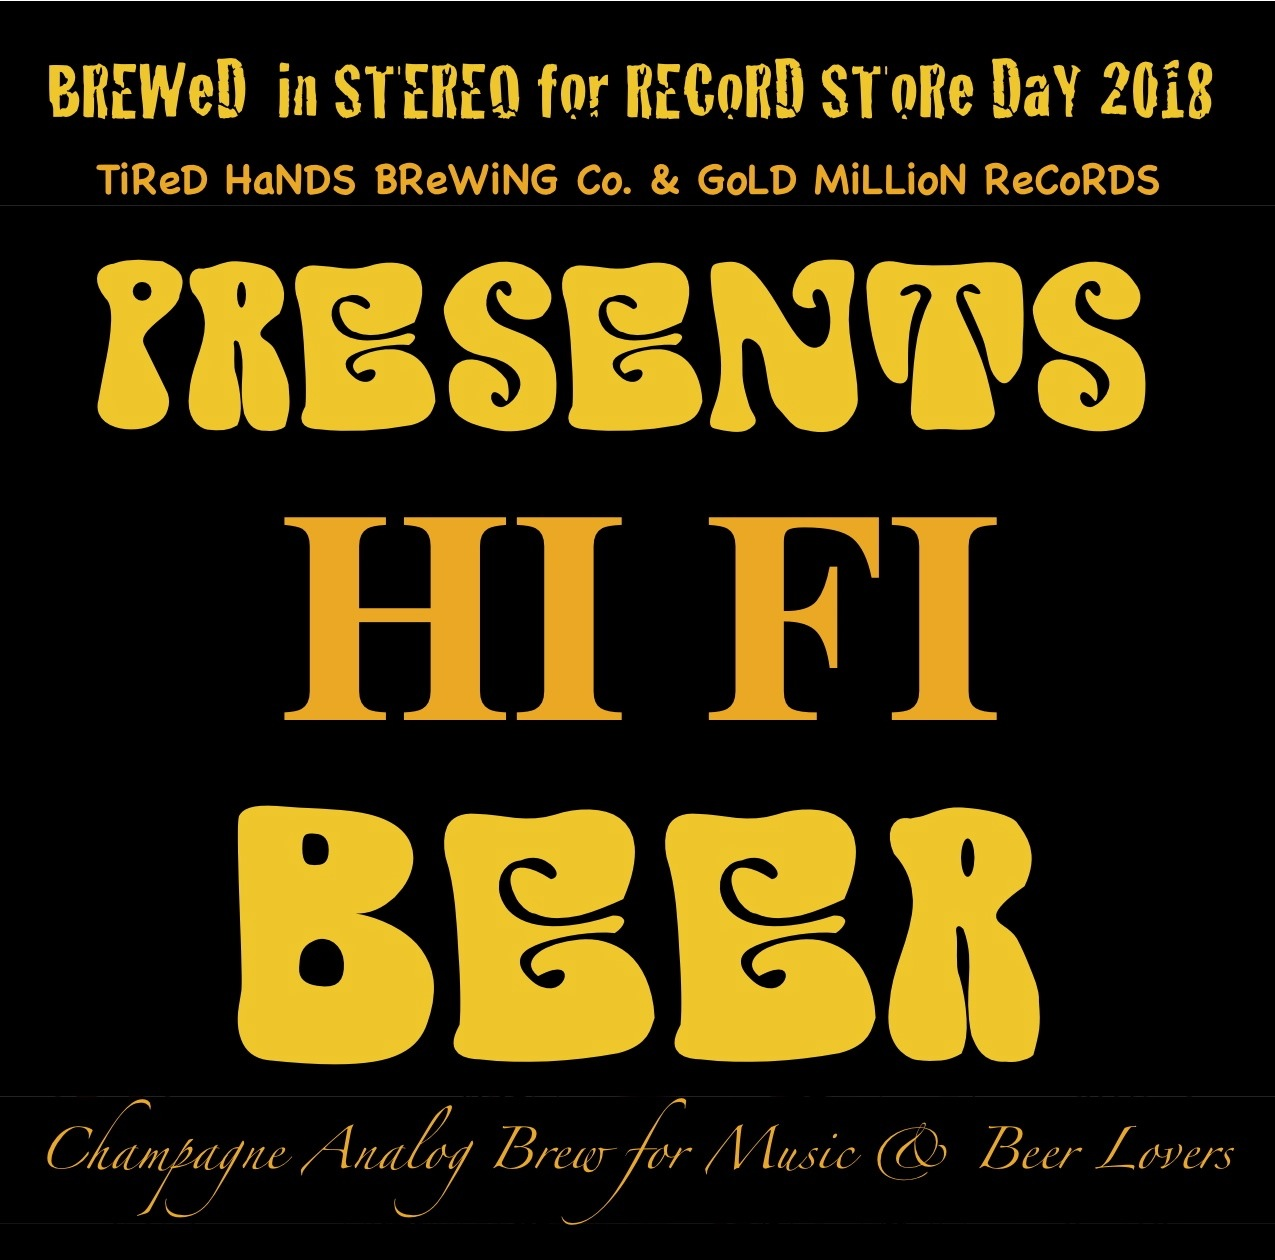 """We CuSToM DeSiGNeD a """"HI fi"""" BeeR FoR ReCoRD SToRe DaY WiTH THe GReat  Tired Hands Brewing Company  in ArDMoRe PA. FREE BEER For QuaLiFieD record store day PaRTiCiPaNTS at gold million records!"""